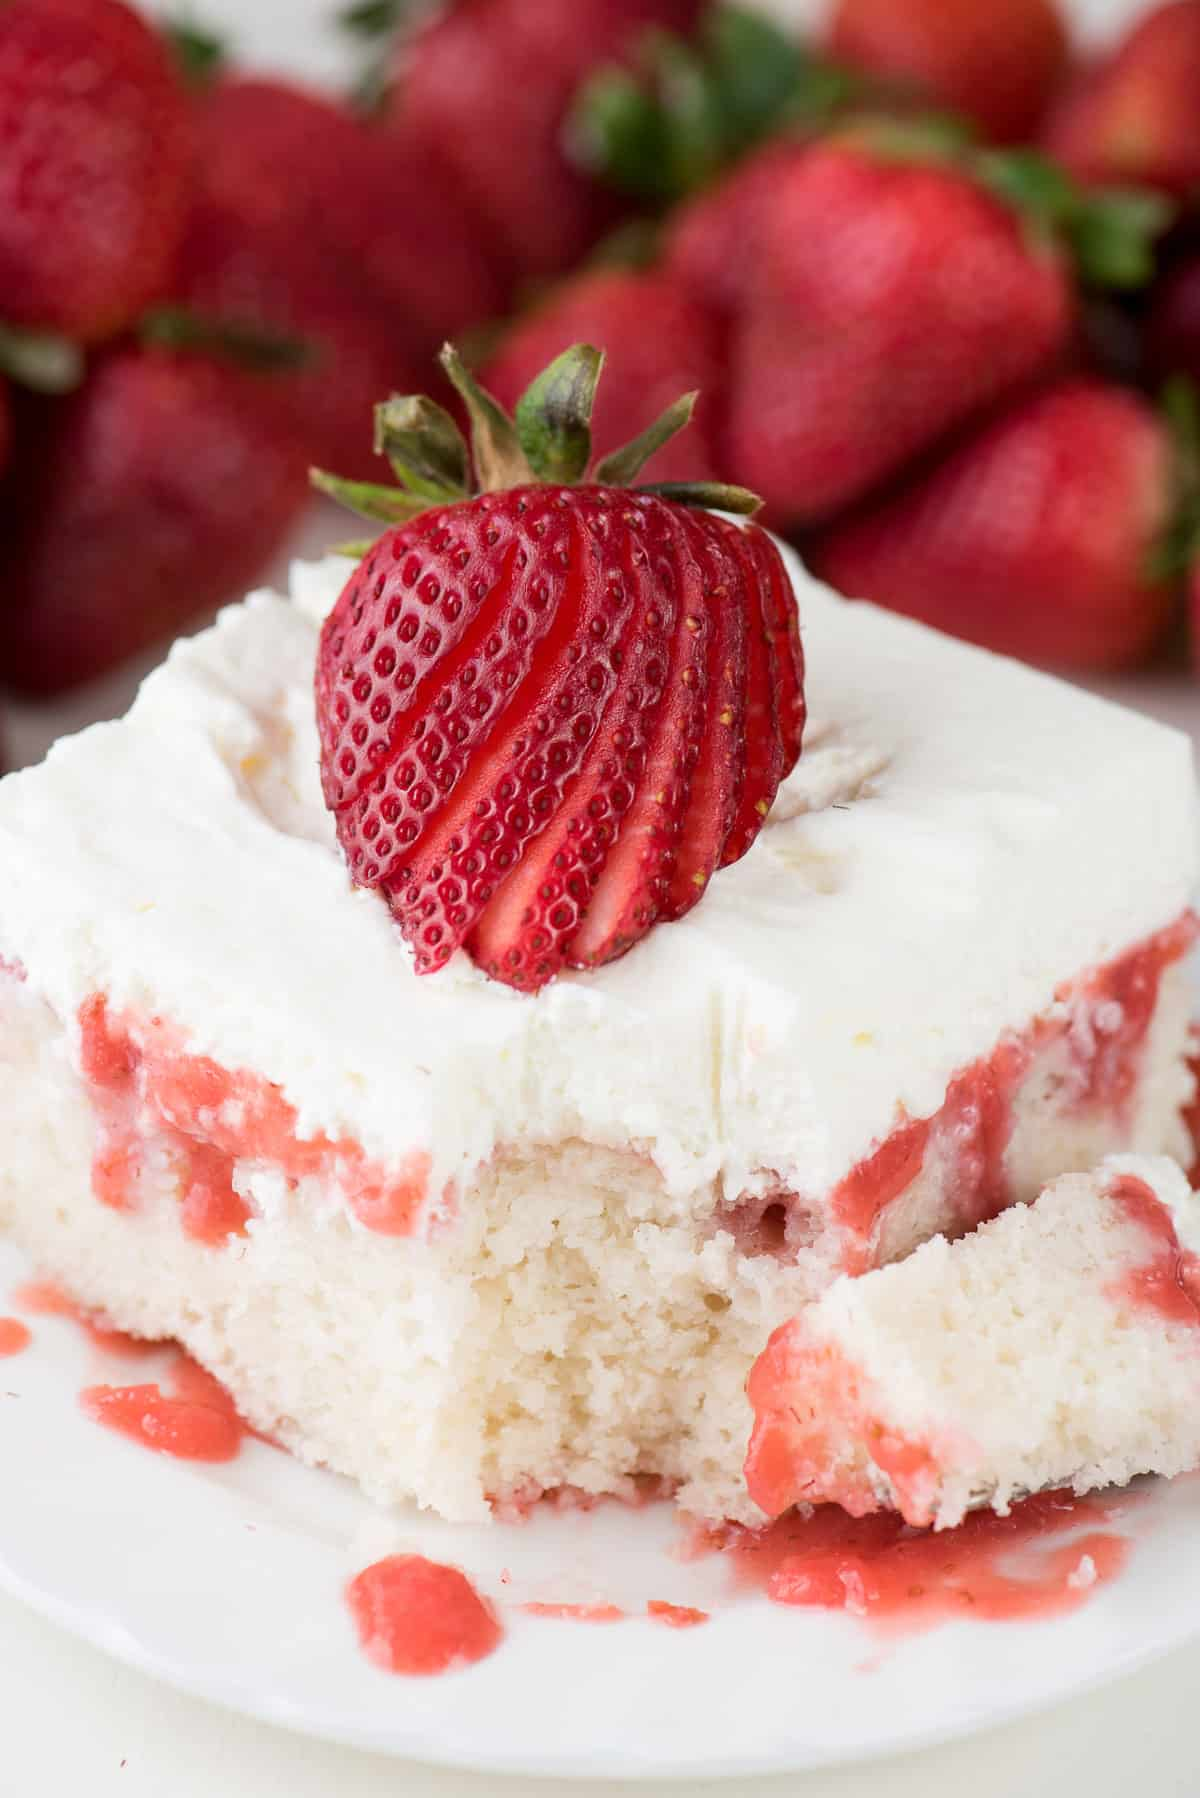 strawberry poke cake with whipped cream topping on white plate with bite taken out